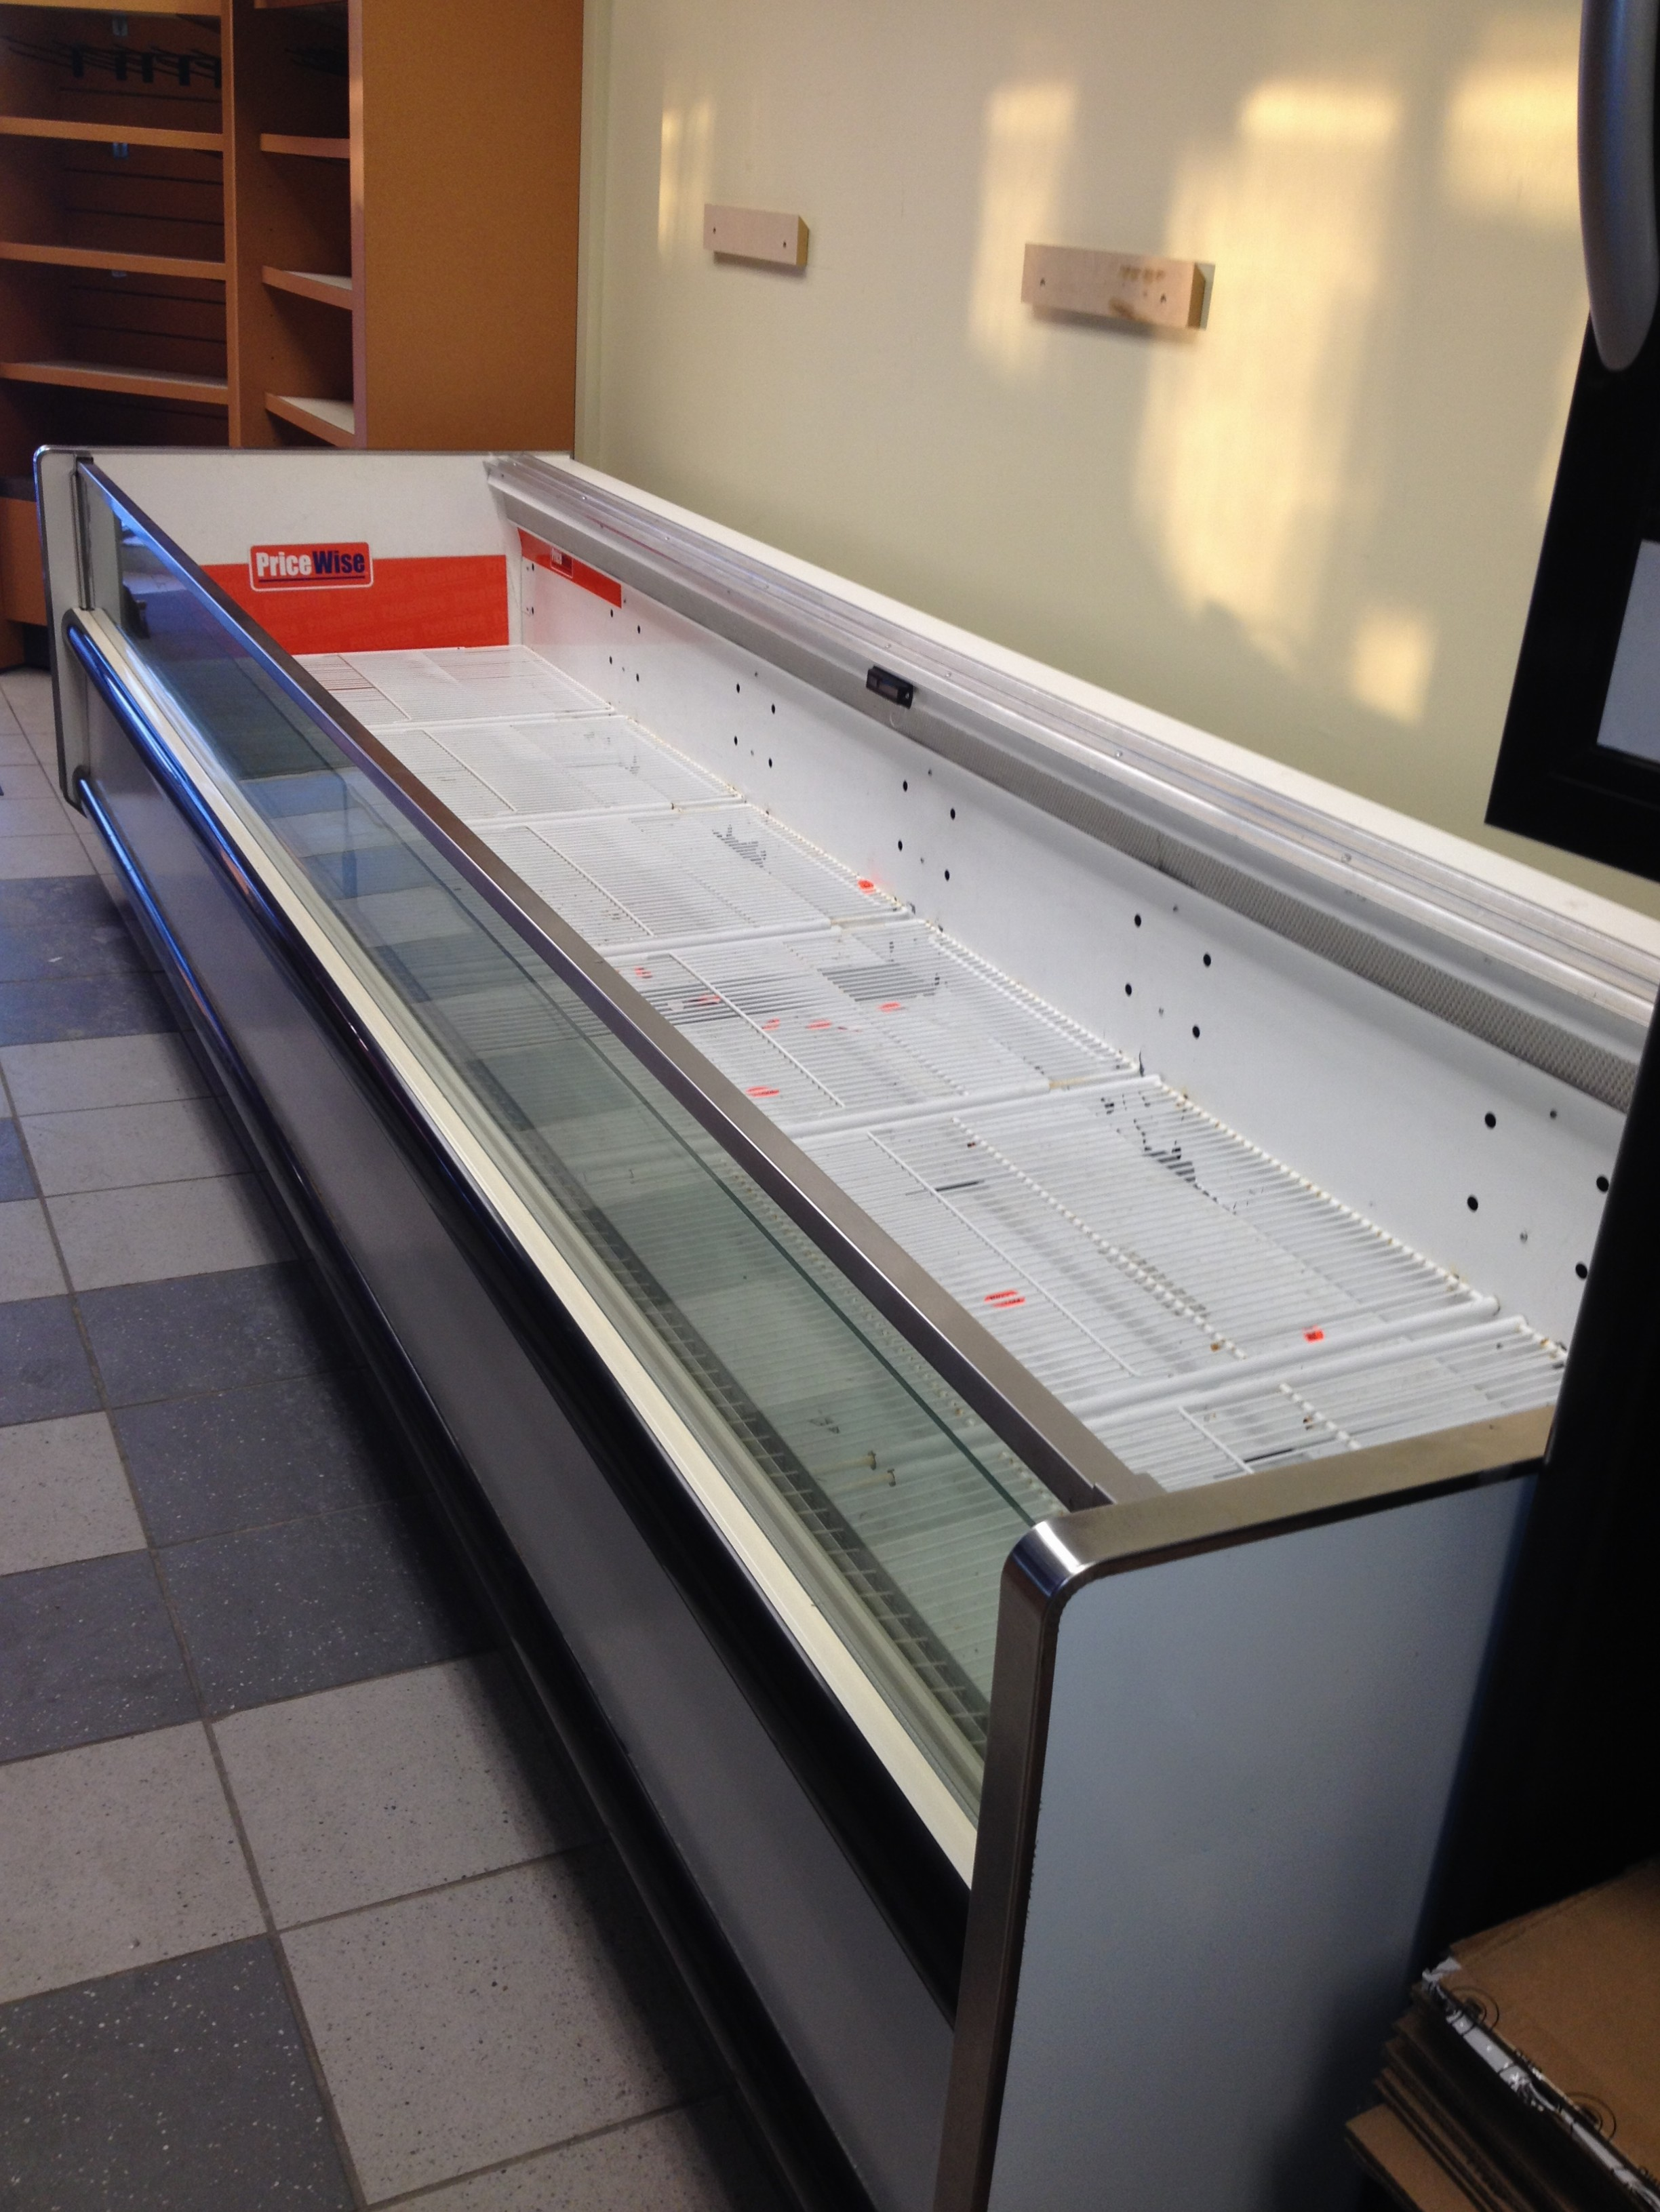 Hussman open display freezer